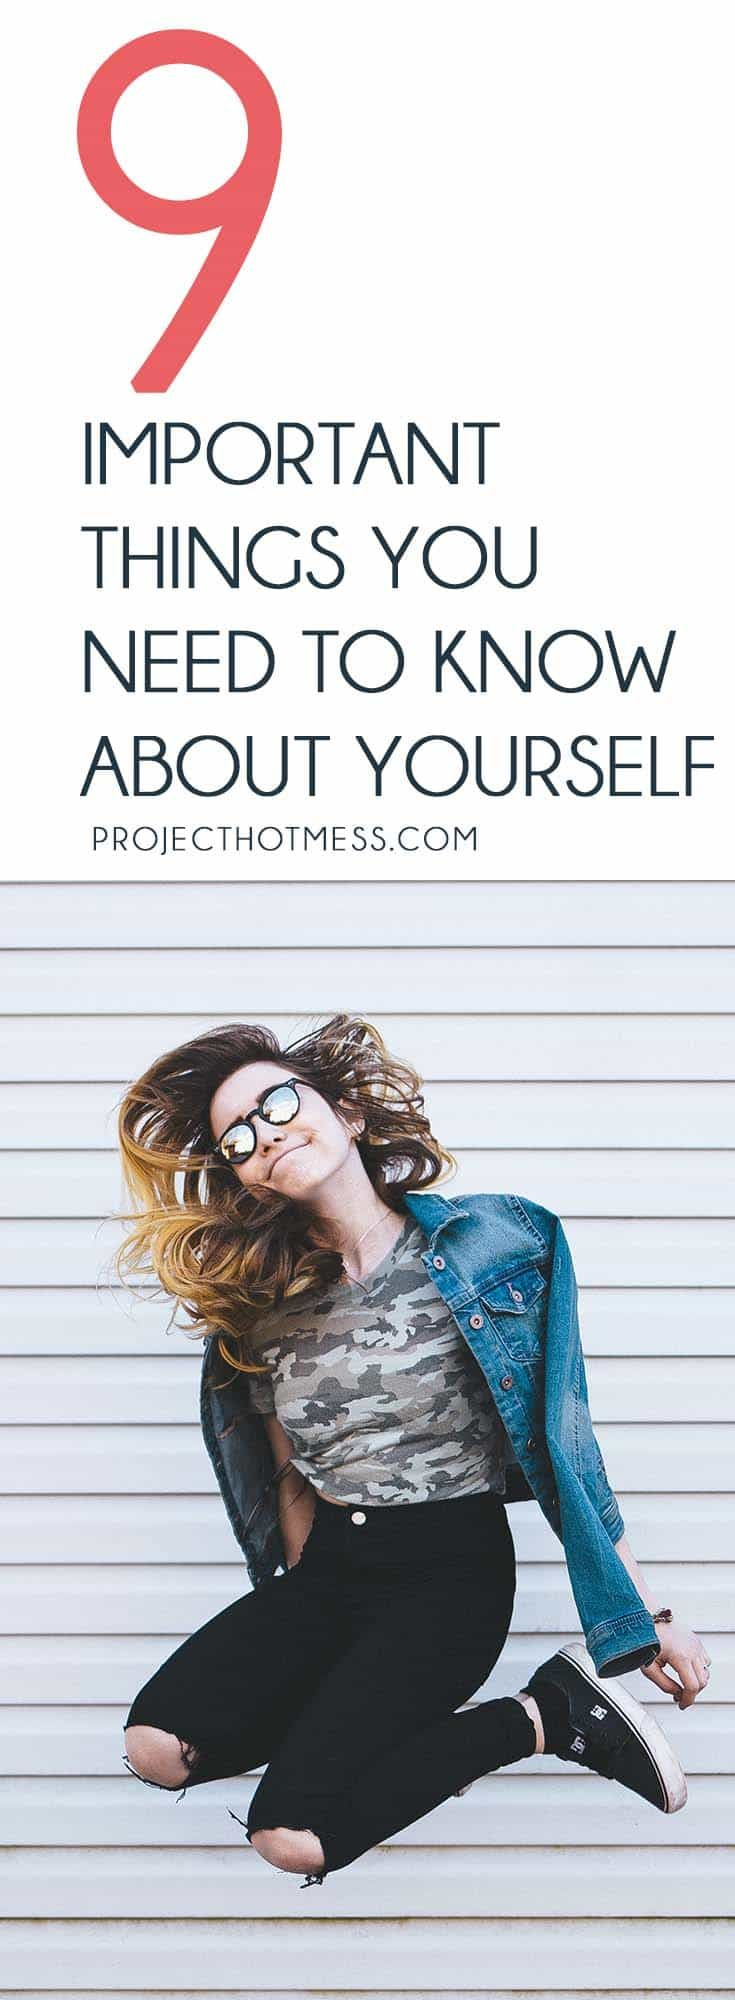 There are important things you need to know about yourself that can help you understand who you are, why you are the way you are and how to be even happier. Confidence | Self Confidence | Self Esteem | Love Yourself | Confidence Building | Confident Woman | Confidence In Yourself | Confident | Self Reflection | Personality | Personality Tests | Know Yourself